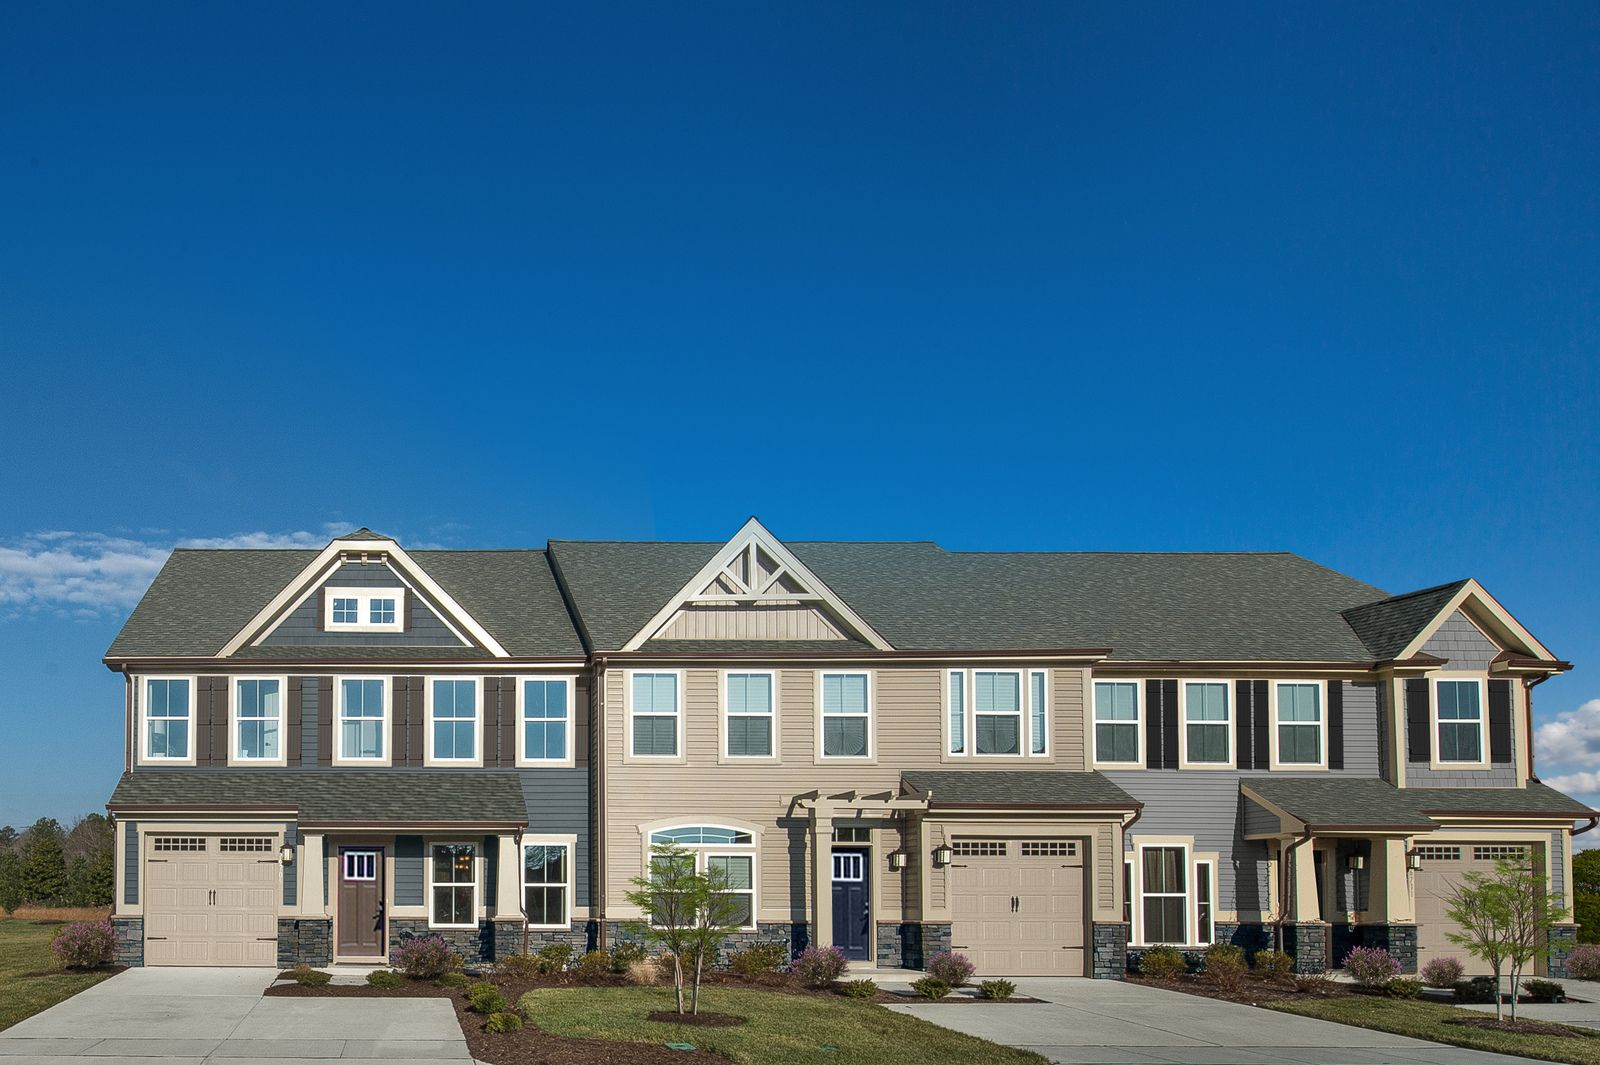 """Own a new townhome with exterior maintenance included.:Located in the heart of Simpsonville within 2 minutes to everyday conveniences. From the mid $200s.Join the VIP List to be """"in the know""""regarding Merrydale Village!"""